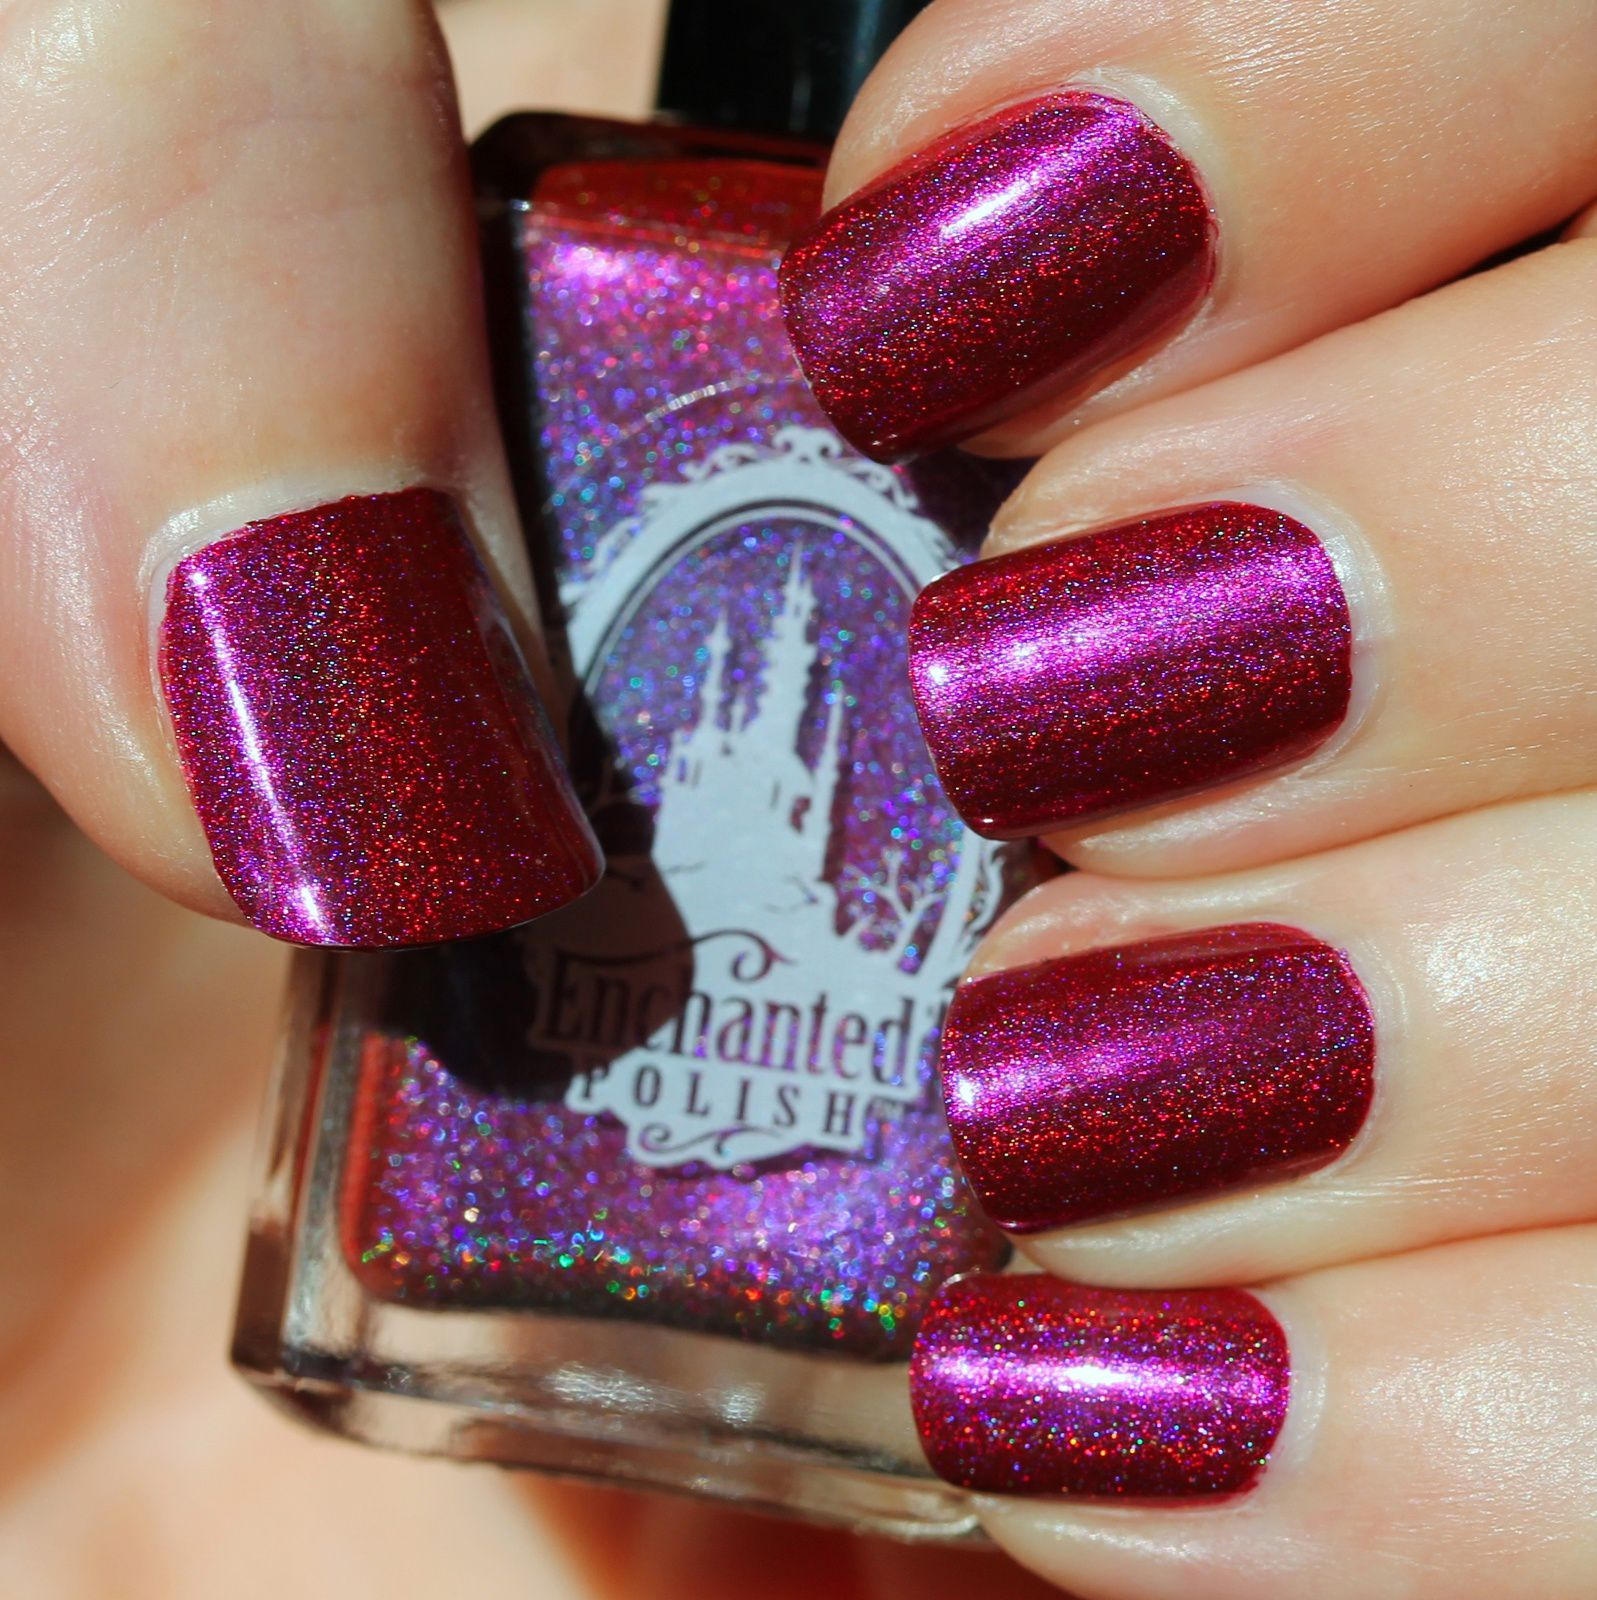 Duri Rejuvacote / Enchanted Polish Lobster Roll / HK Girl Top Coat